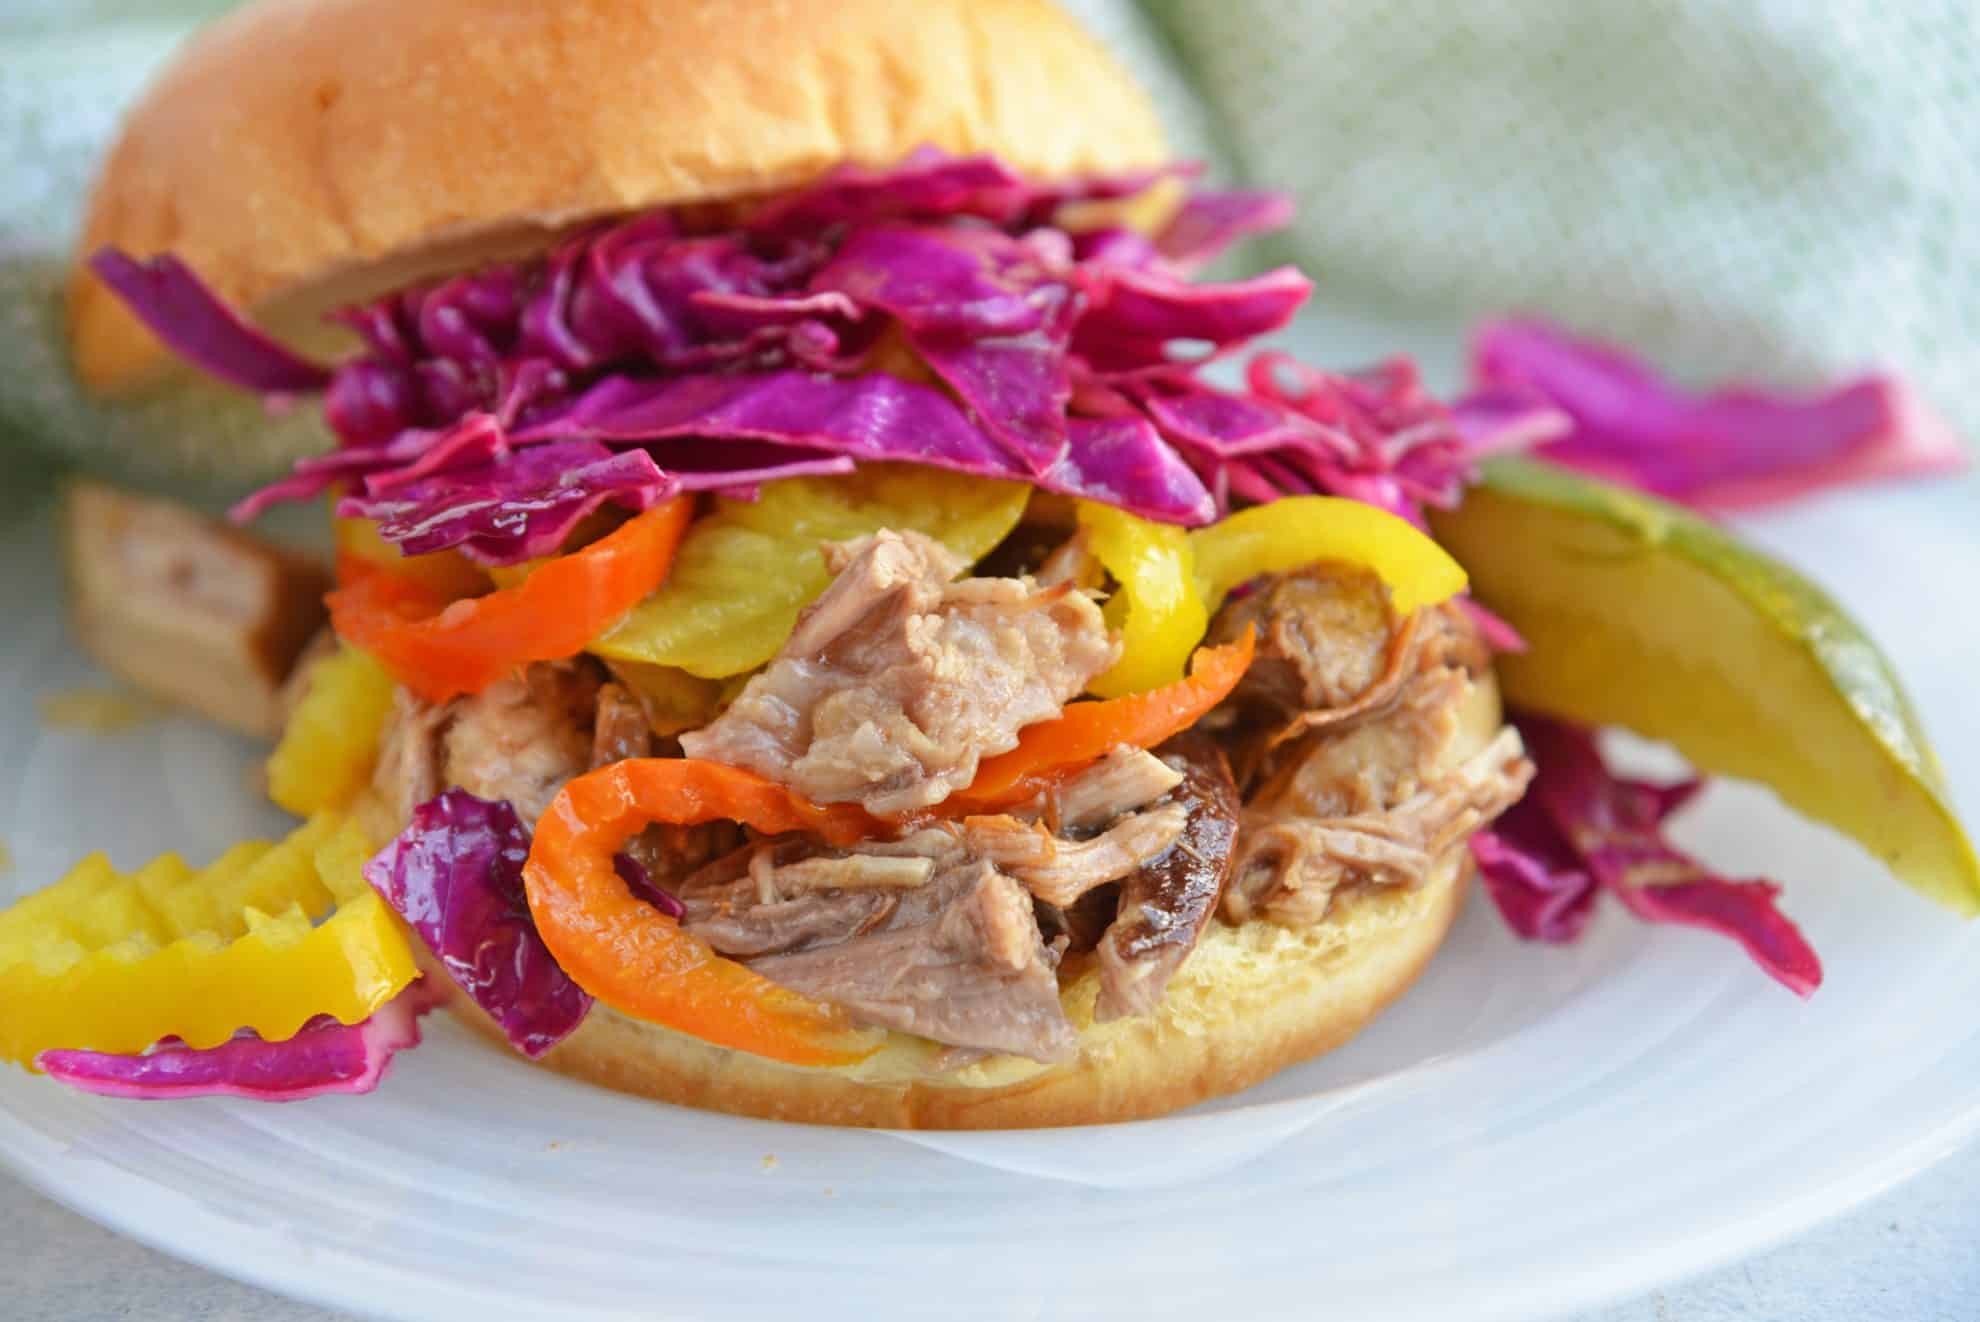 Pulled Pork Sandwich with banana peppers and red cabbage slaw